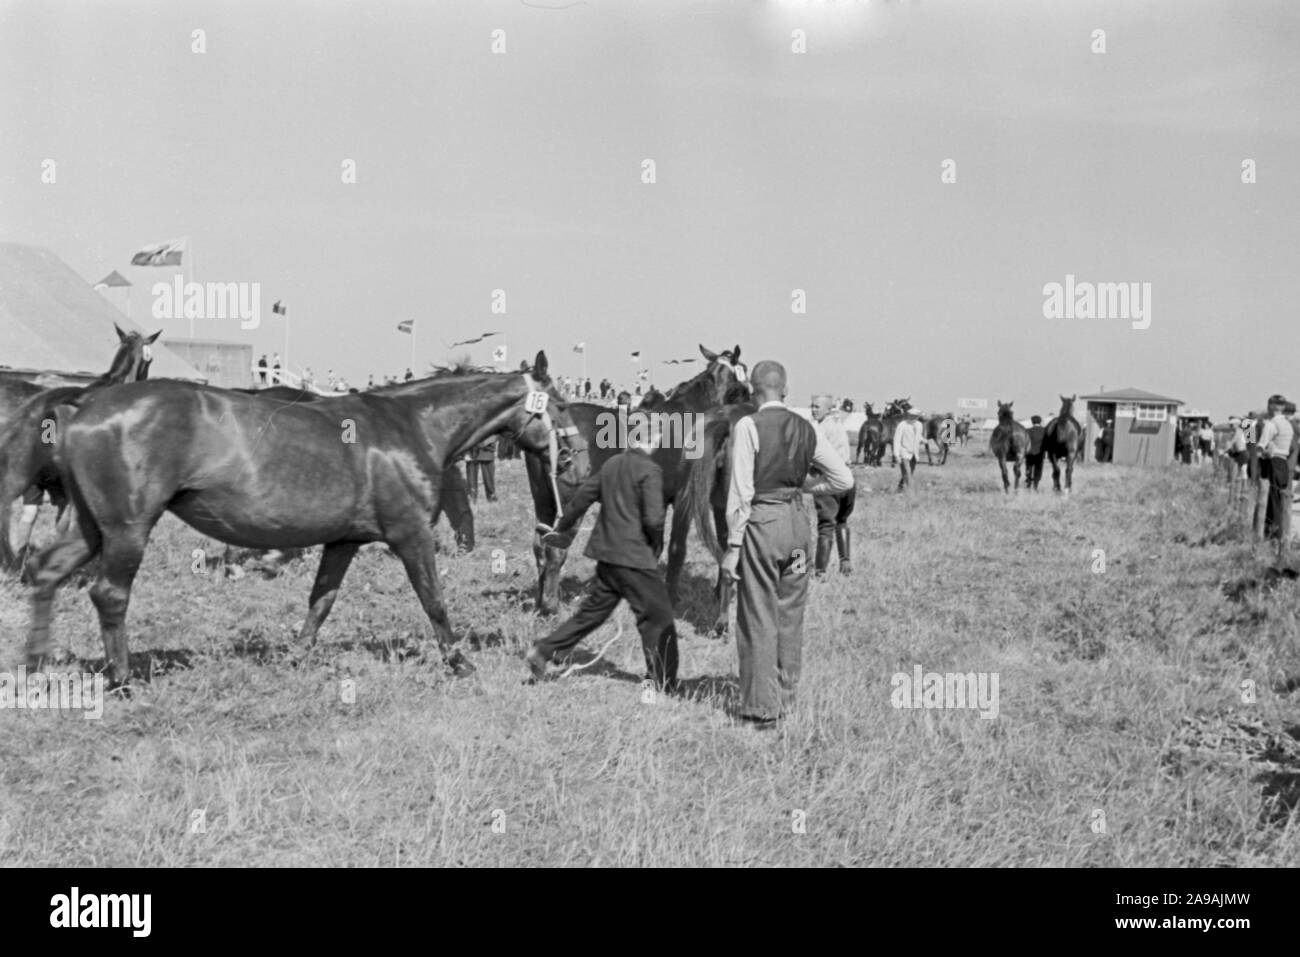 Rgeional custom: Duhner Wattrennen horserace at Duhnen near Cuxhaven, Germany 1930s. Stock Photo